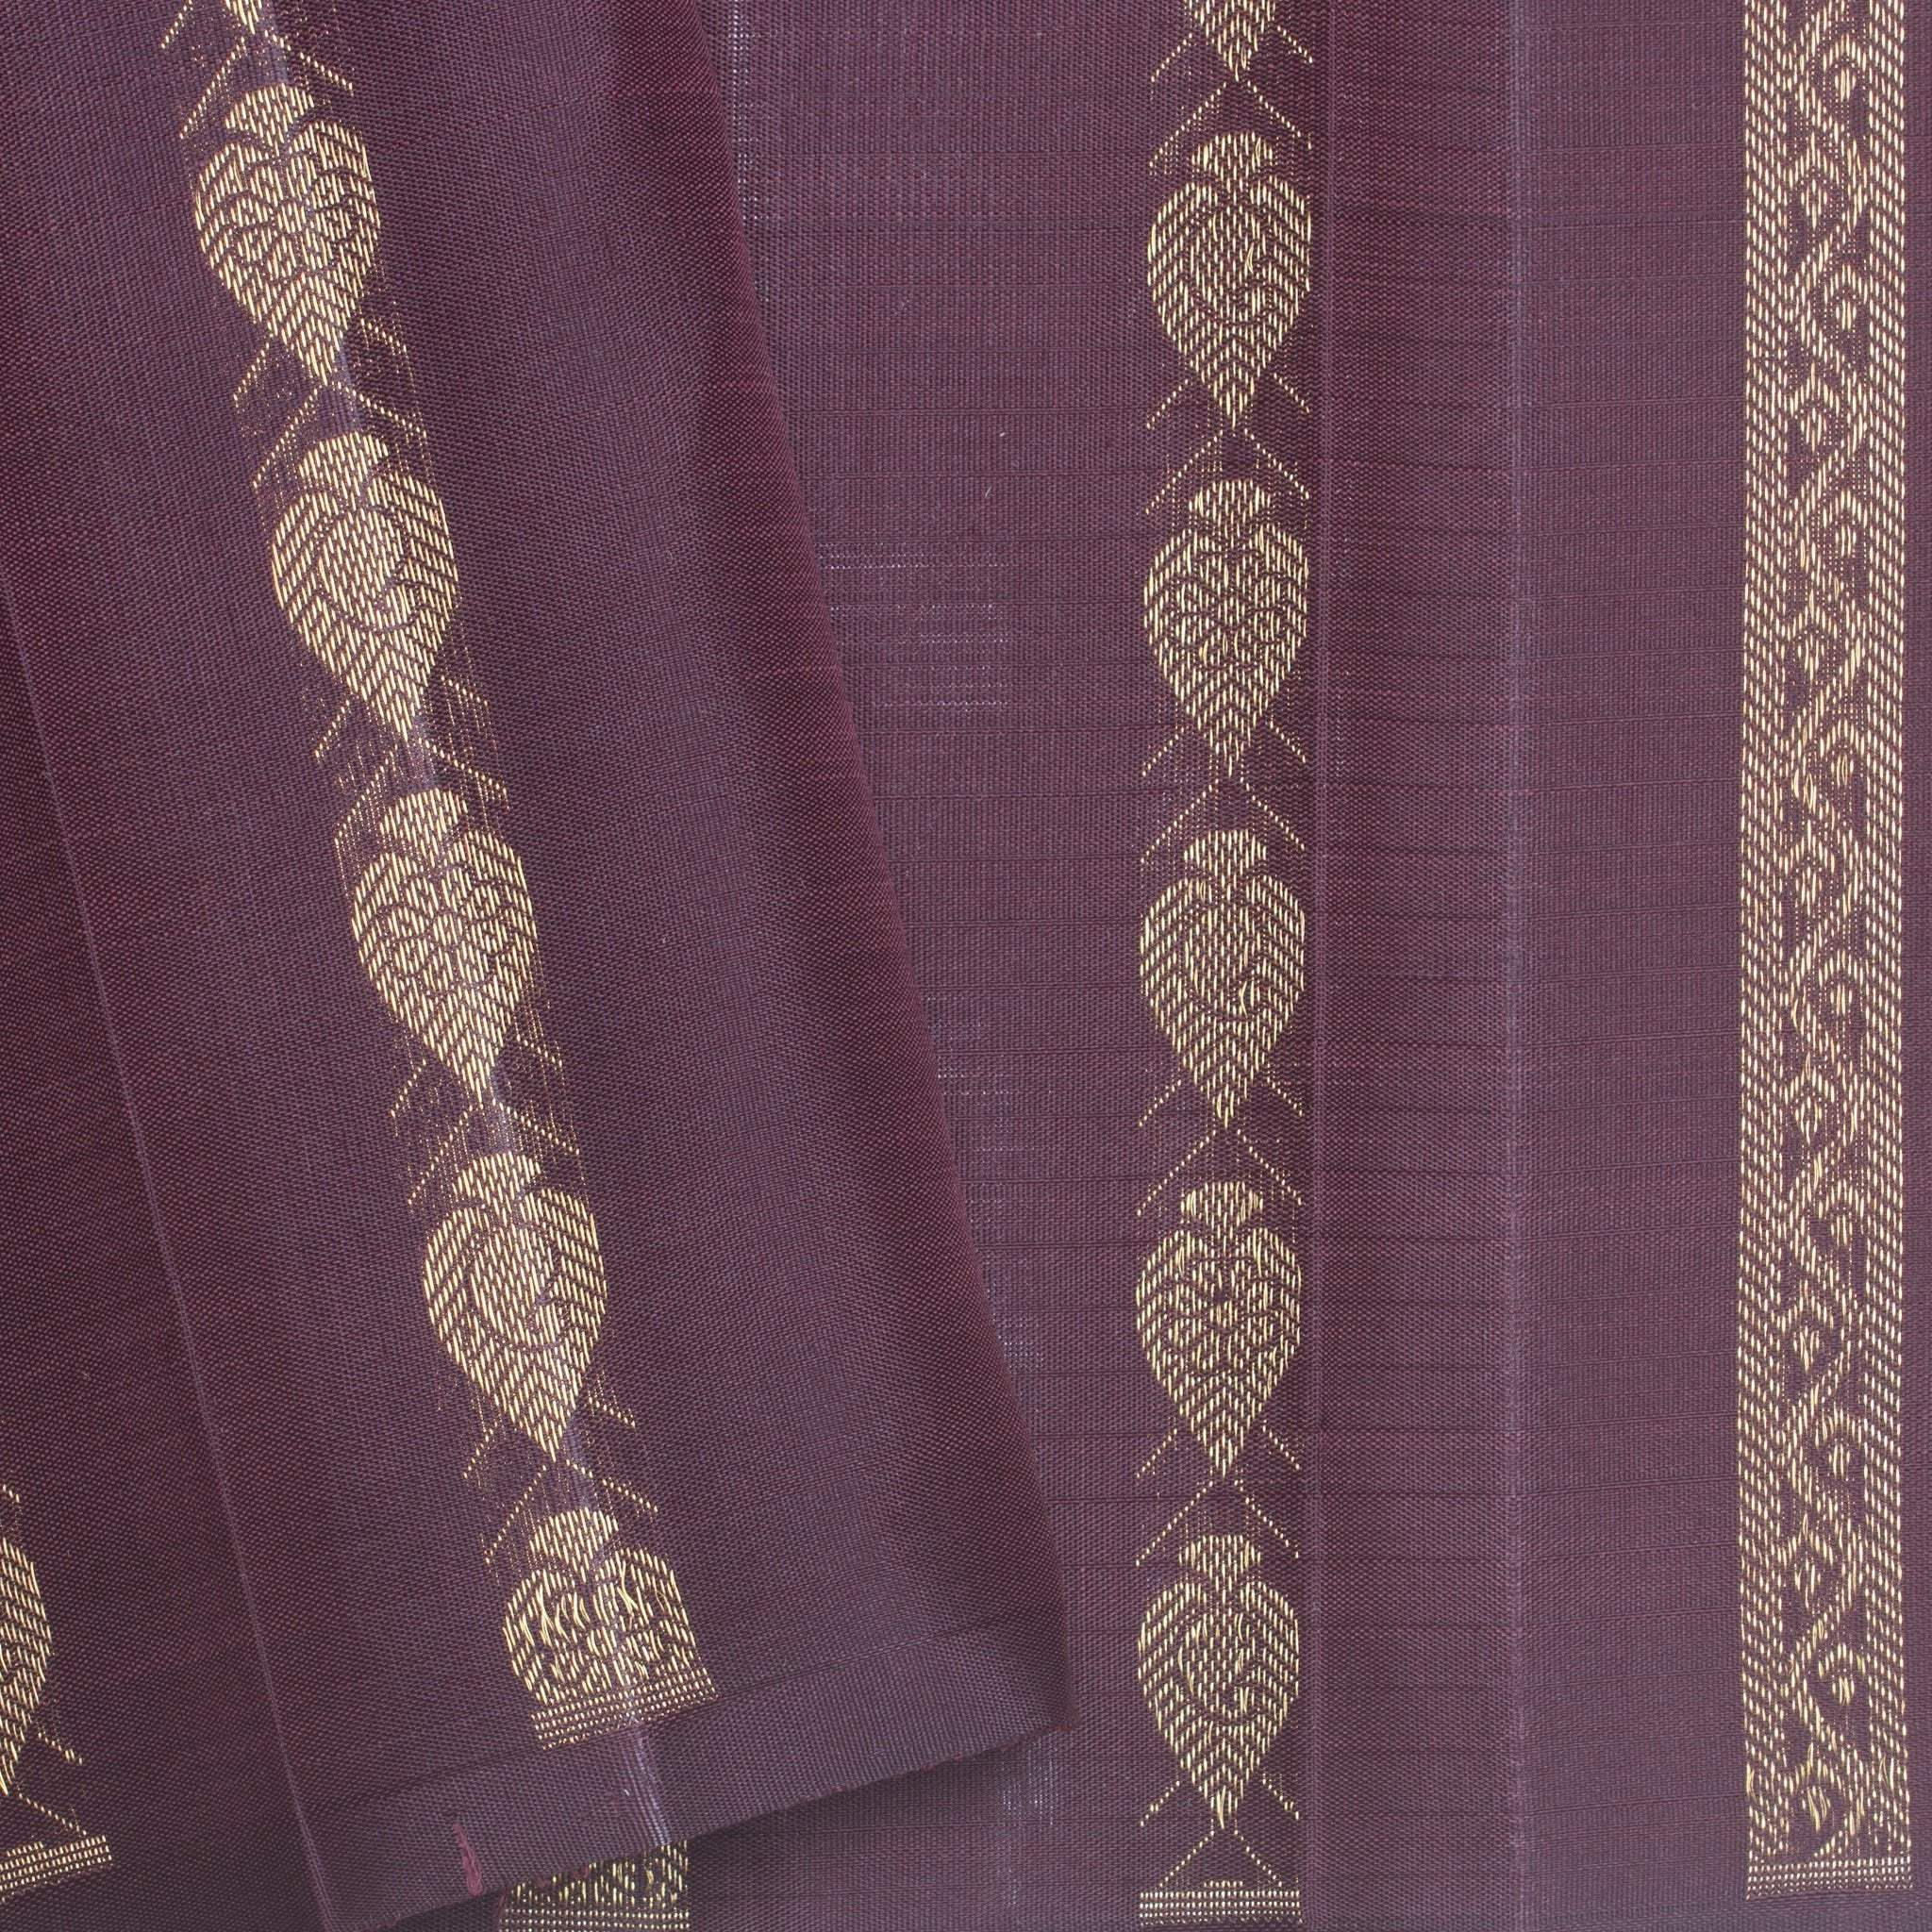 BB095898-Baby Pink Kanjivaram Silk Handloom Saree With With Checks